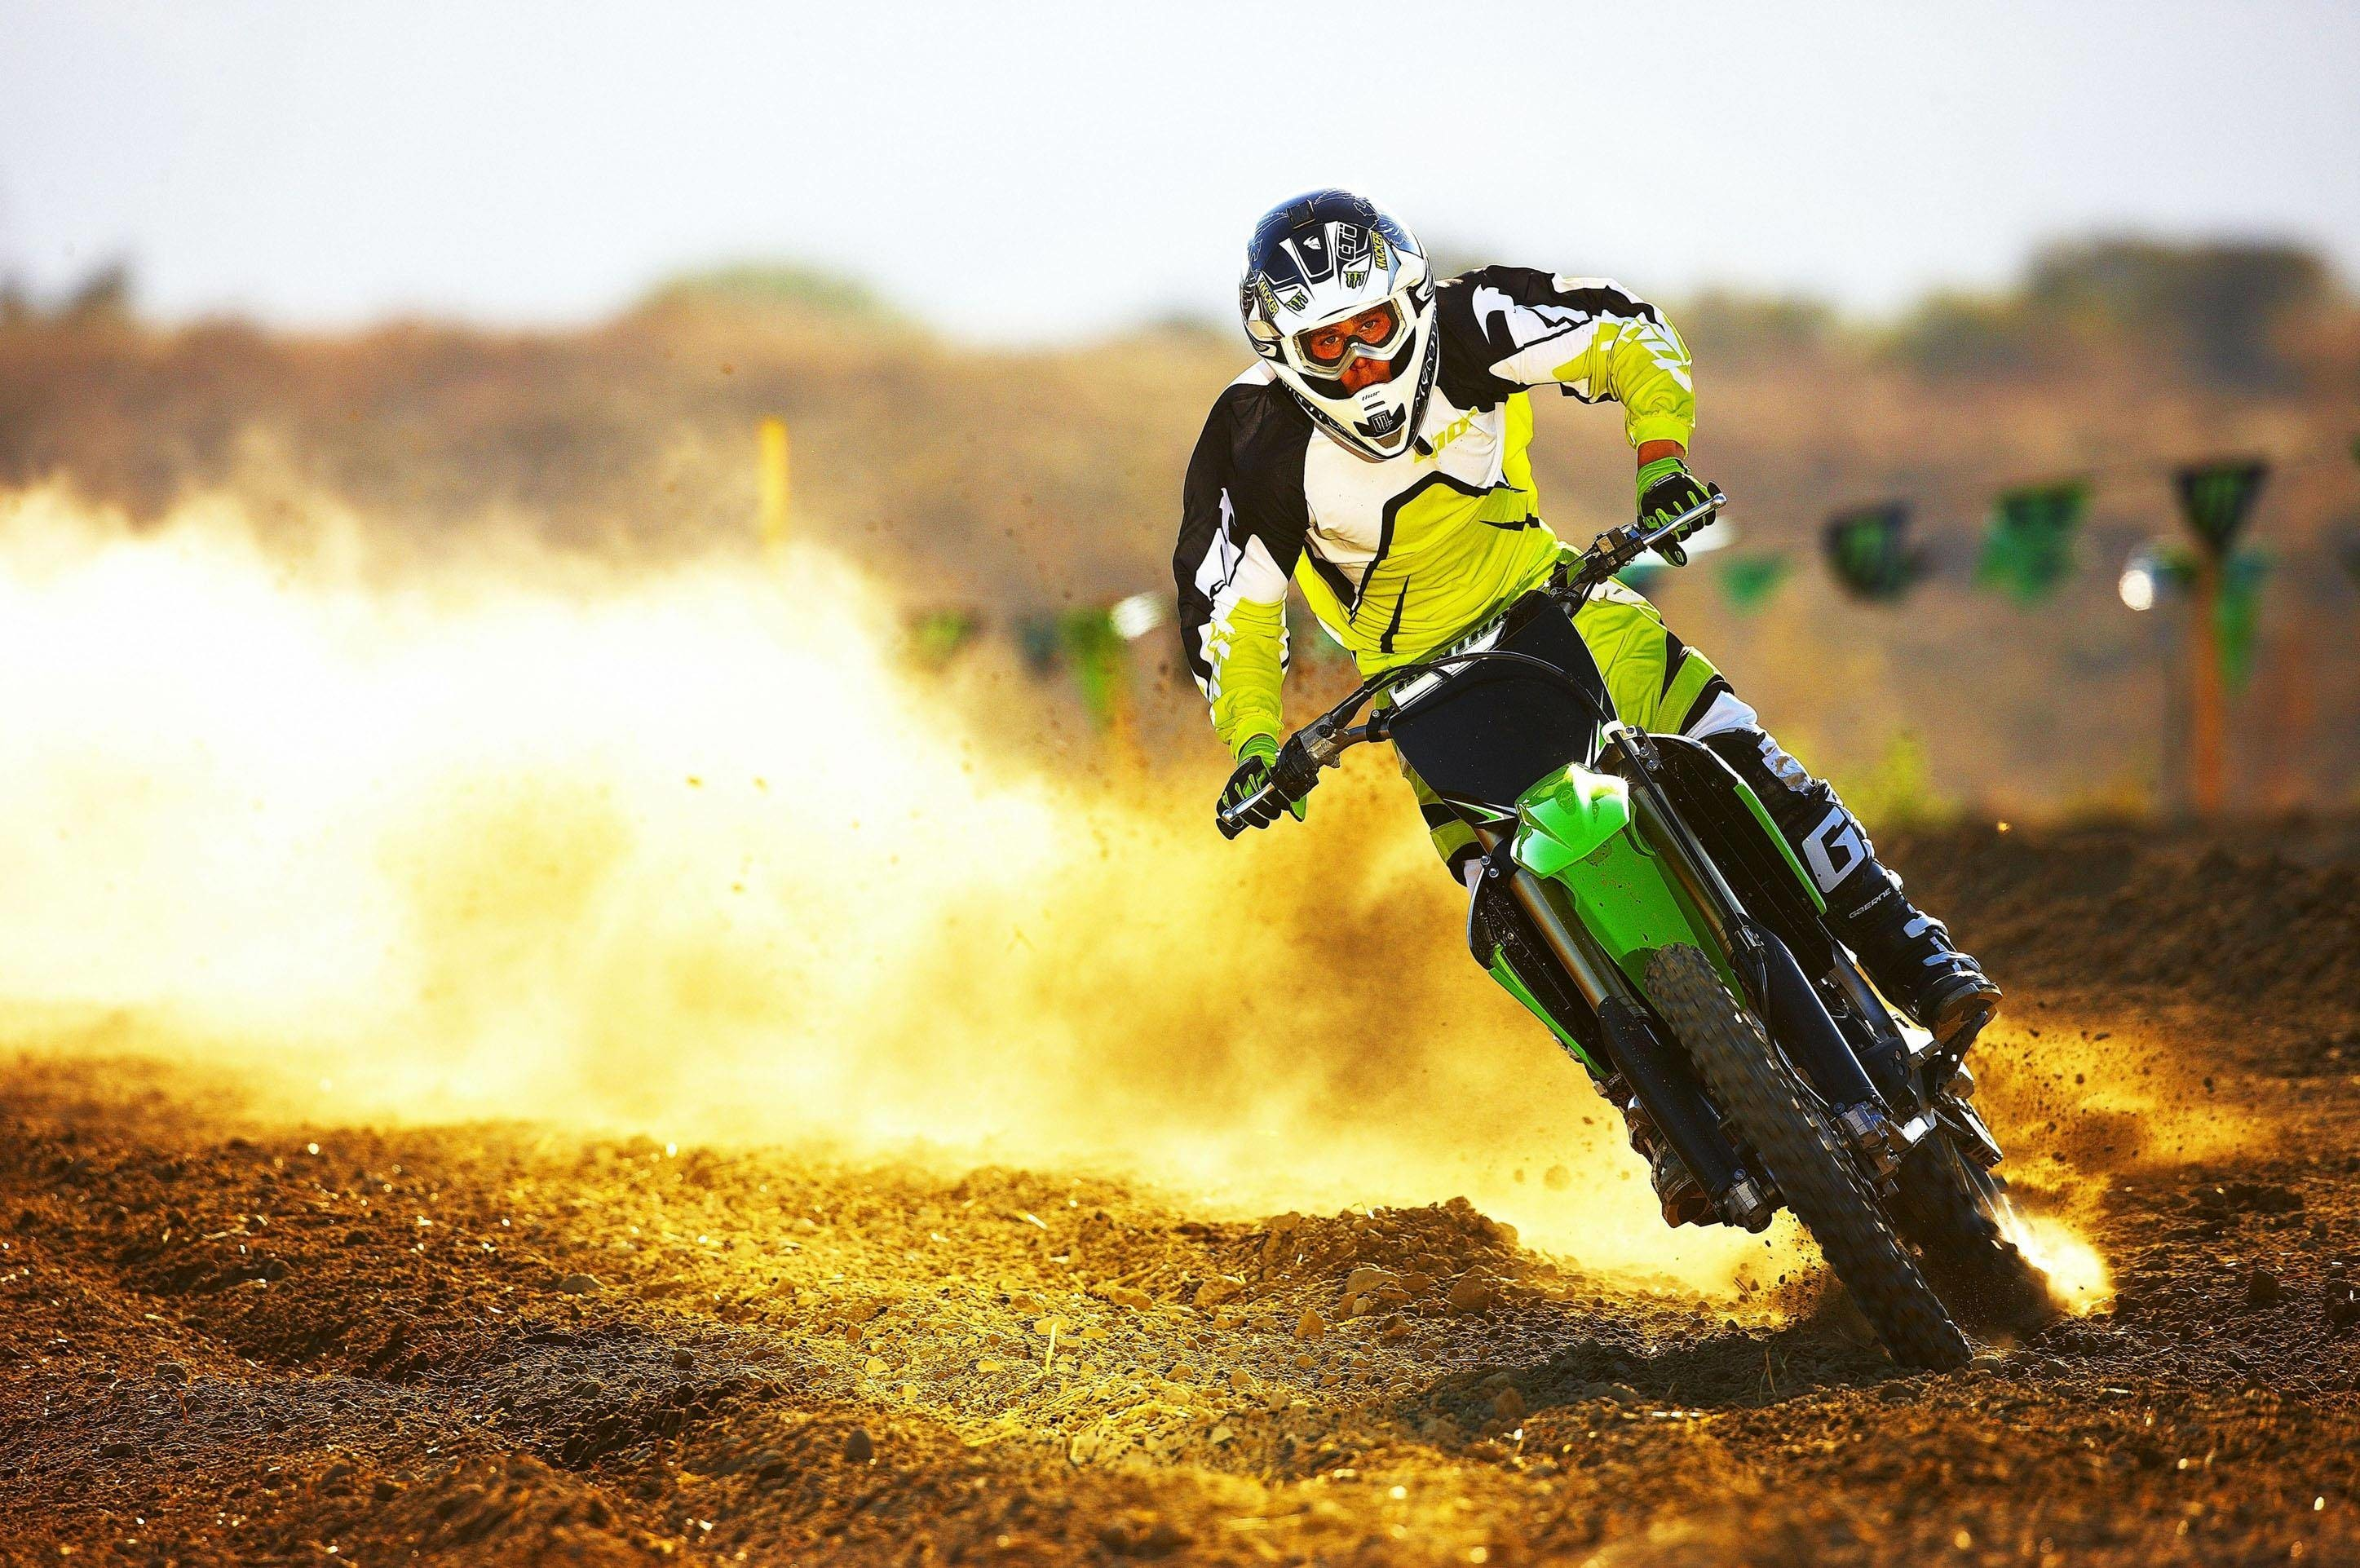 2894x1923 Freestyle Motocross wallpapers for iphone · Off Road MotorcyclesMotorcycle  BikeDirt ...